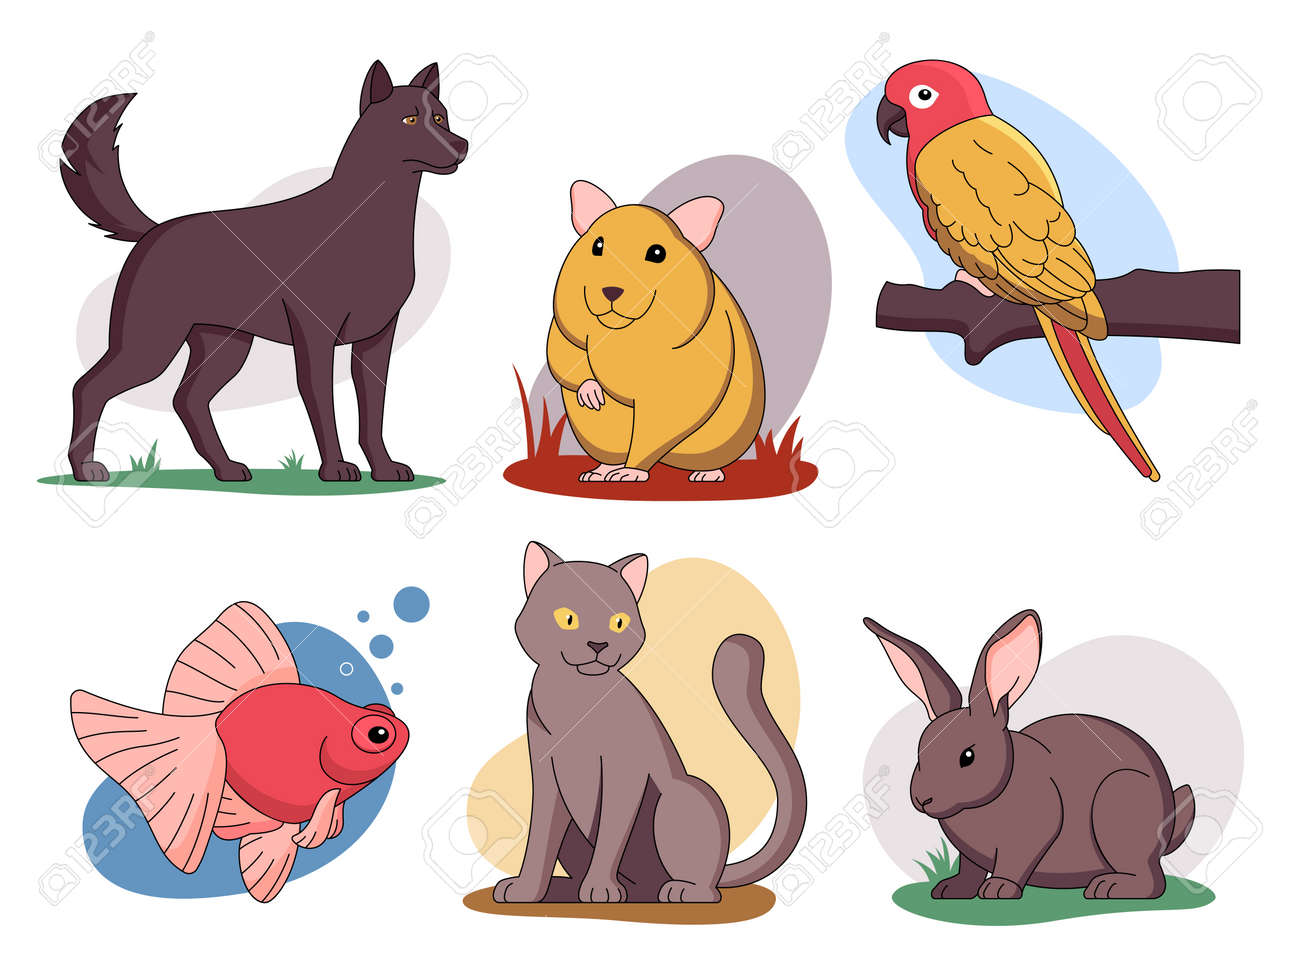 Funny pets vector illustrations set and other home animals - 161957793